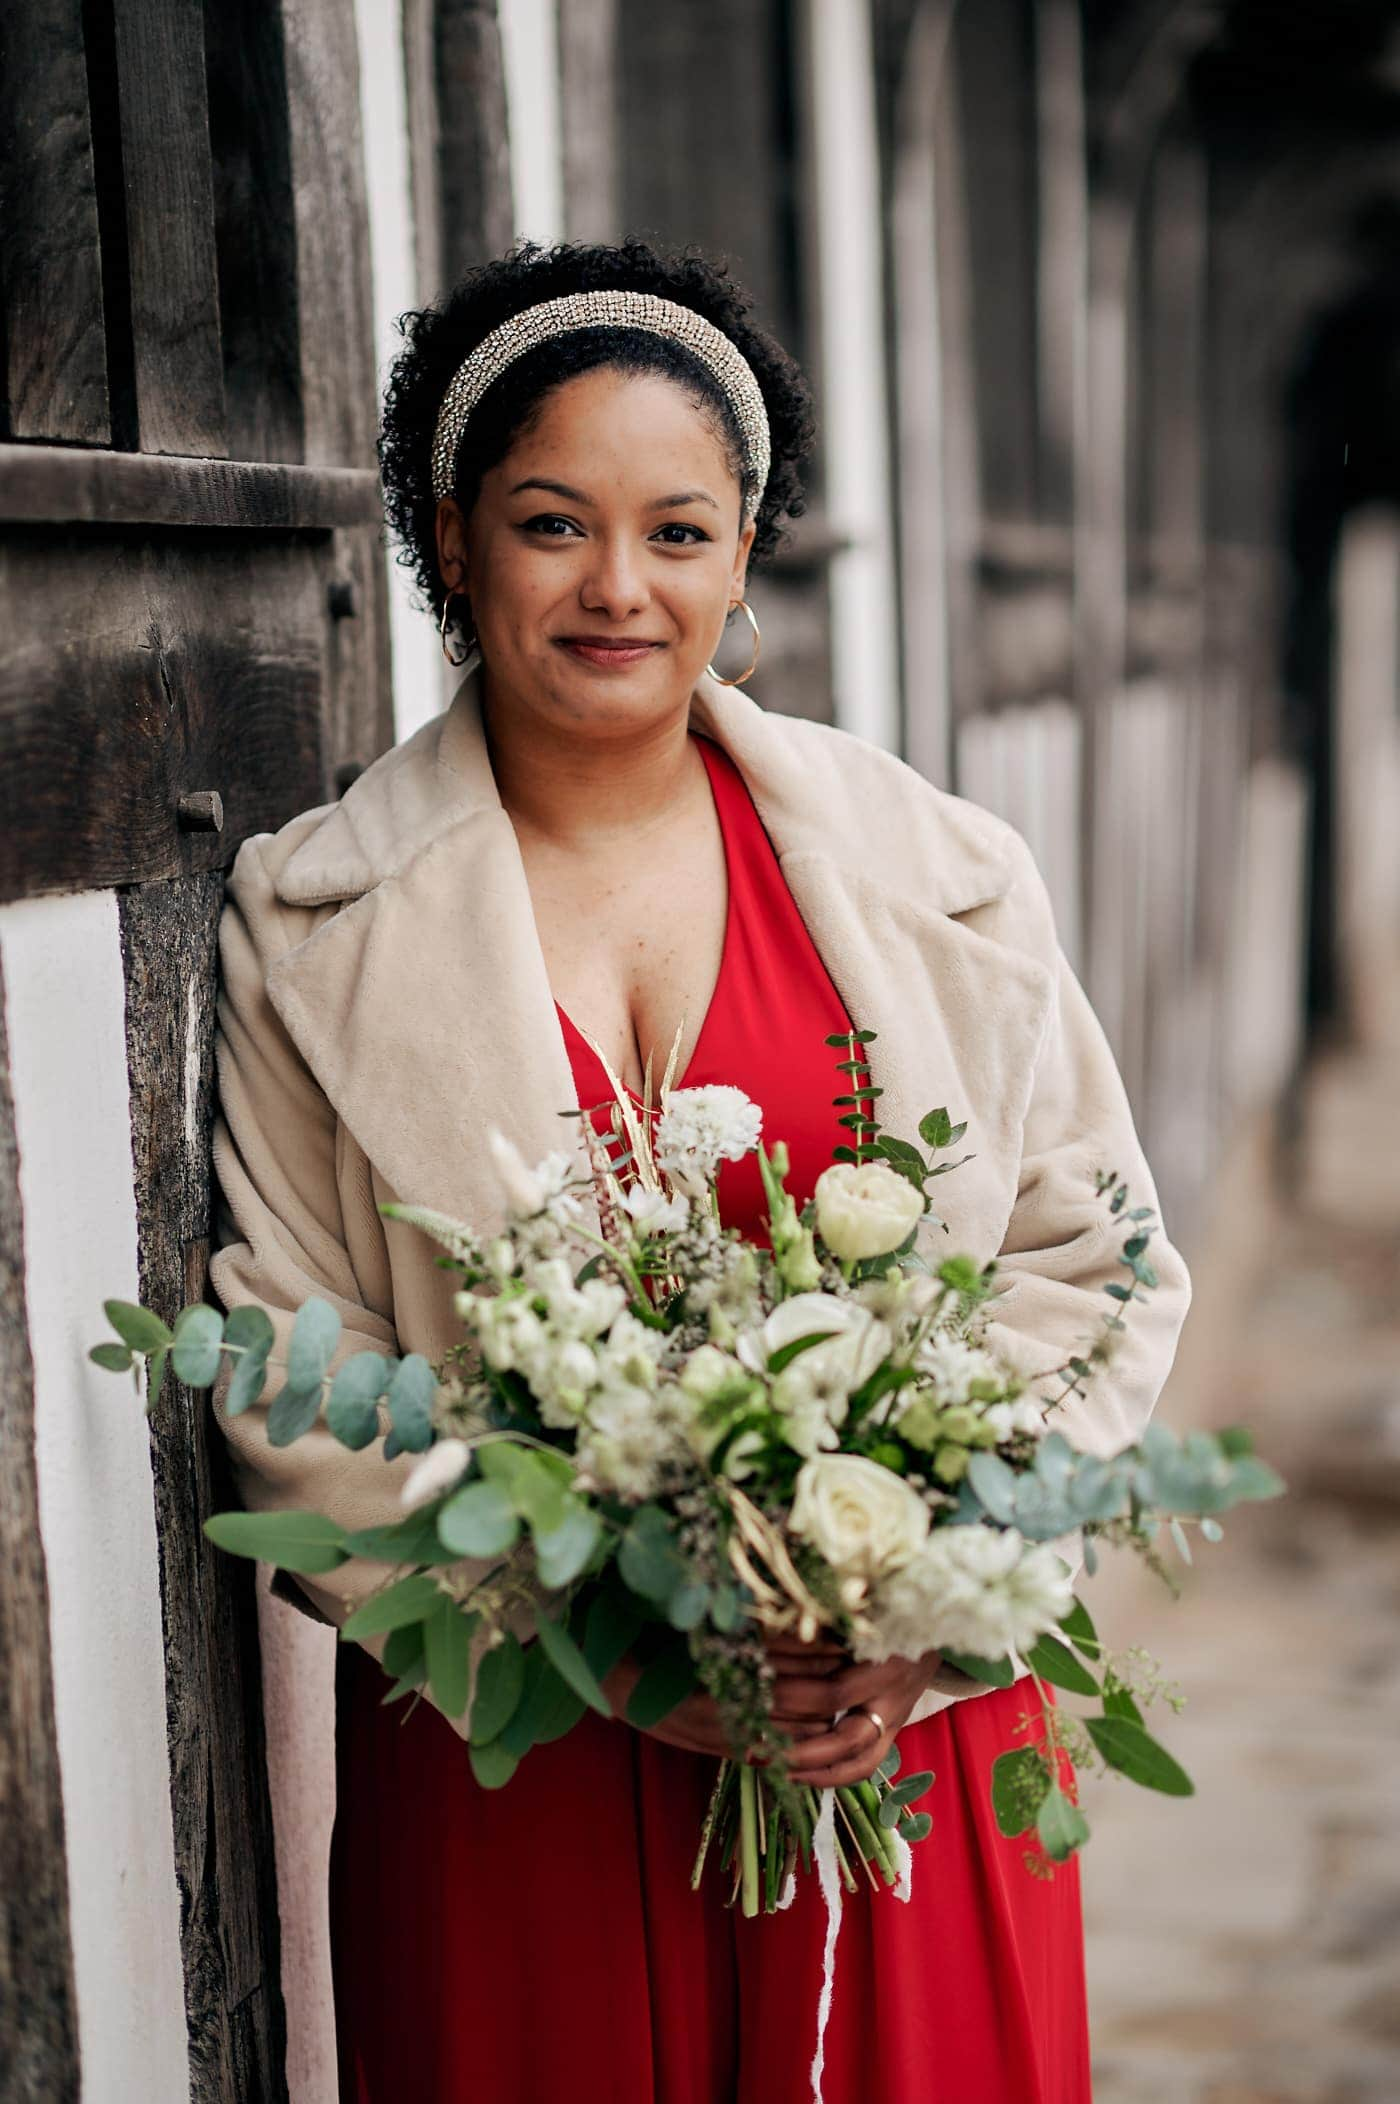 Portrait of bride in red trouser suit holding beautiful bouquet of flowers